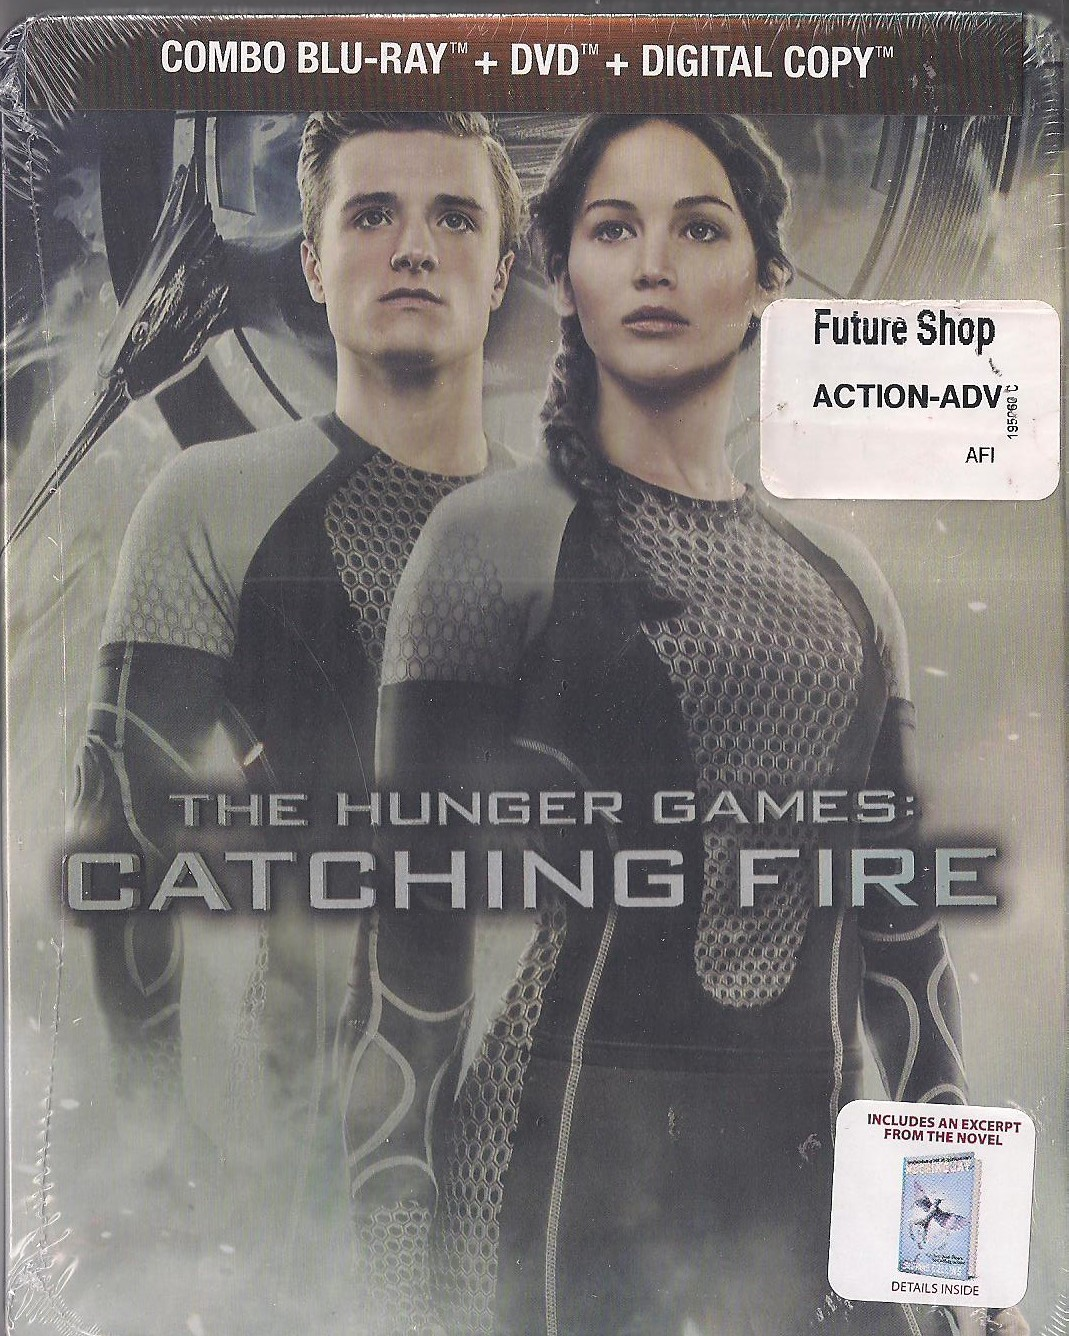 Primary image for The Hunger Games Catching Fire Future Shop Canada Steelbook Combo Blu-Ray + DVD